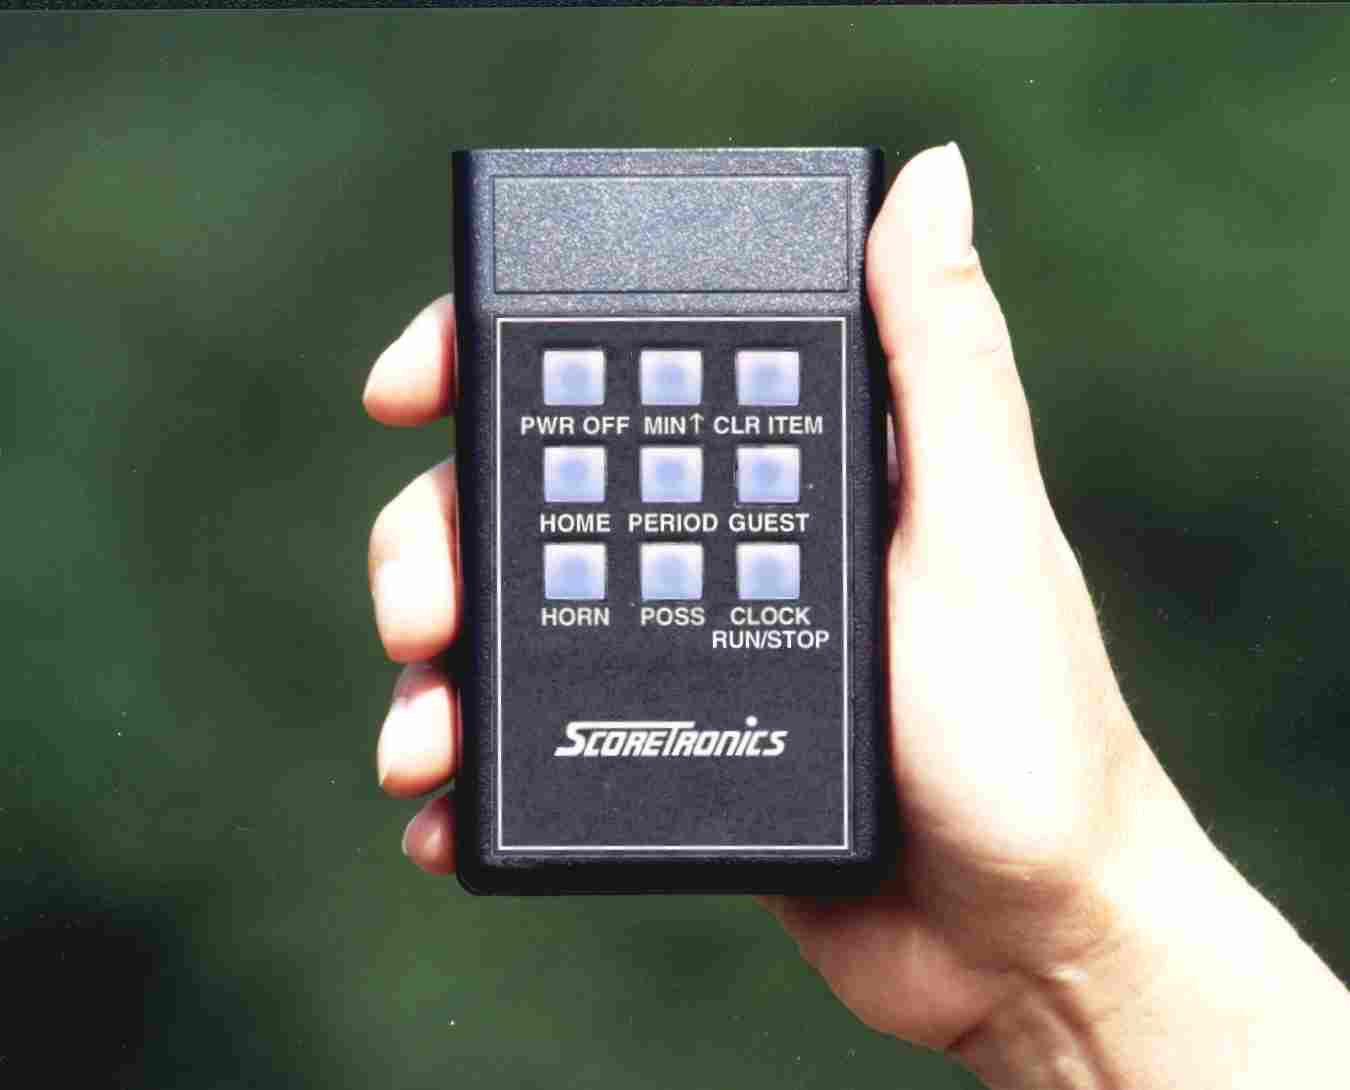 Standard remote control for portable scoreboard.